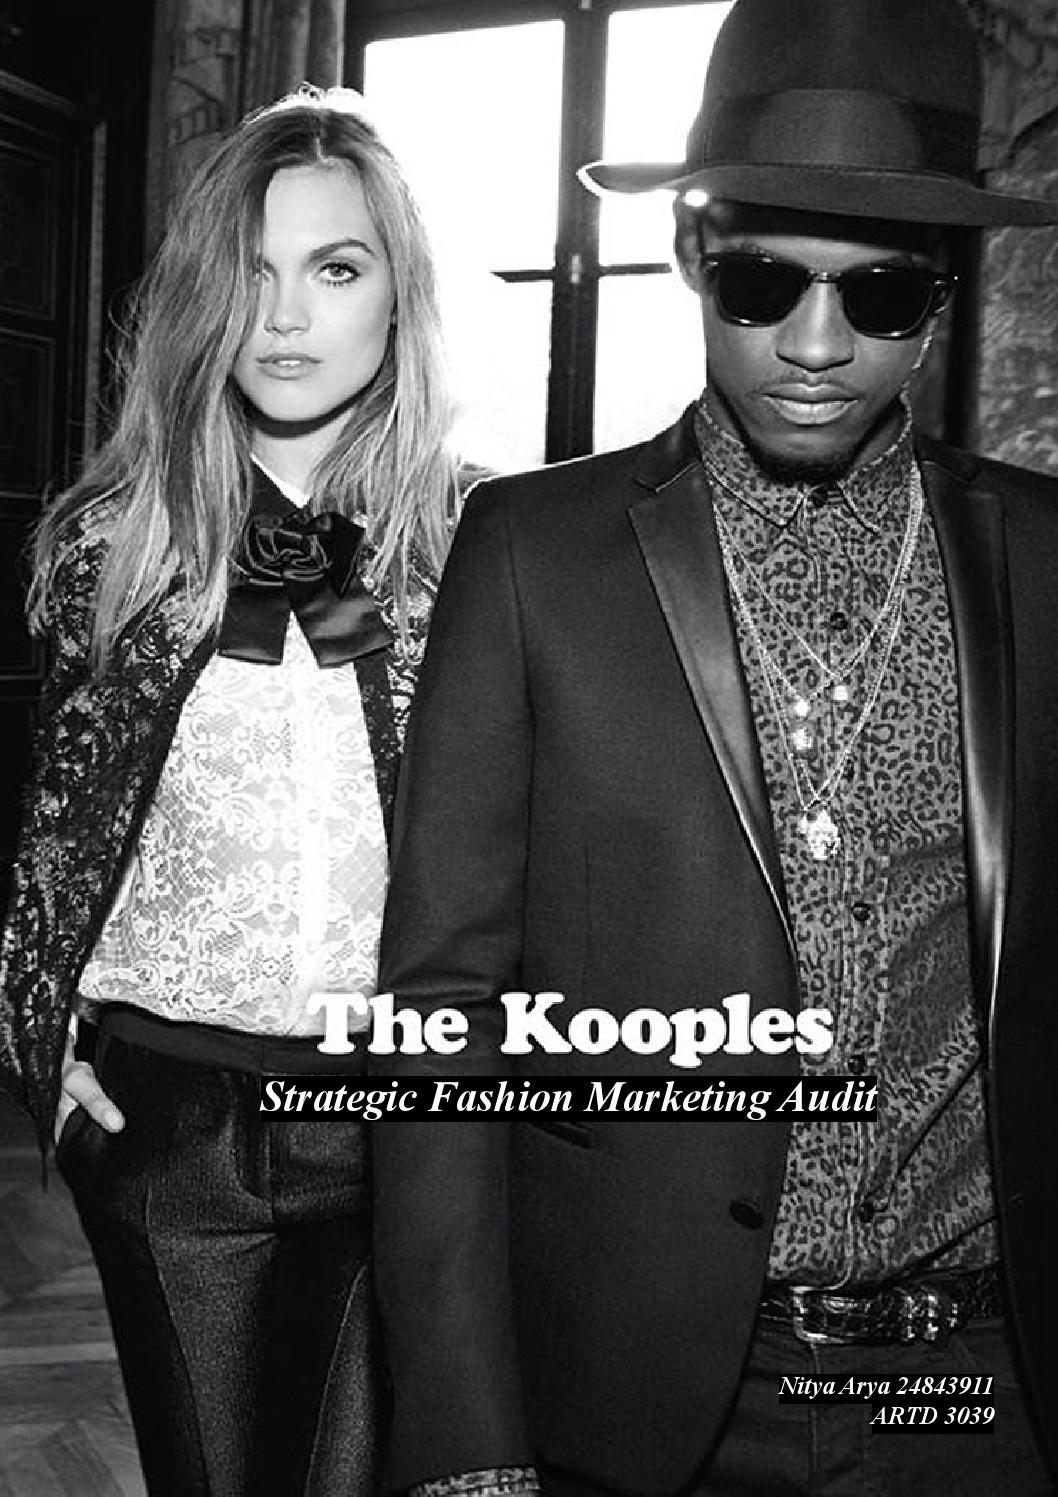 the kooples brand audit Find this pin and more on kotva i contemporary super brands by yuliaspiridonova valentijn de hingh discusses her life as a trans model, and how we can all break free.